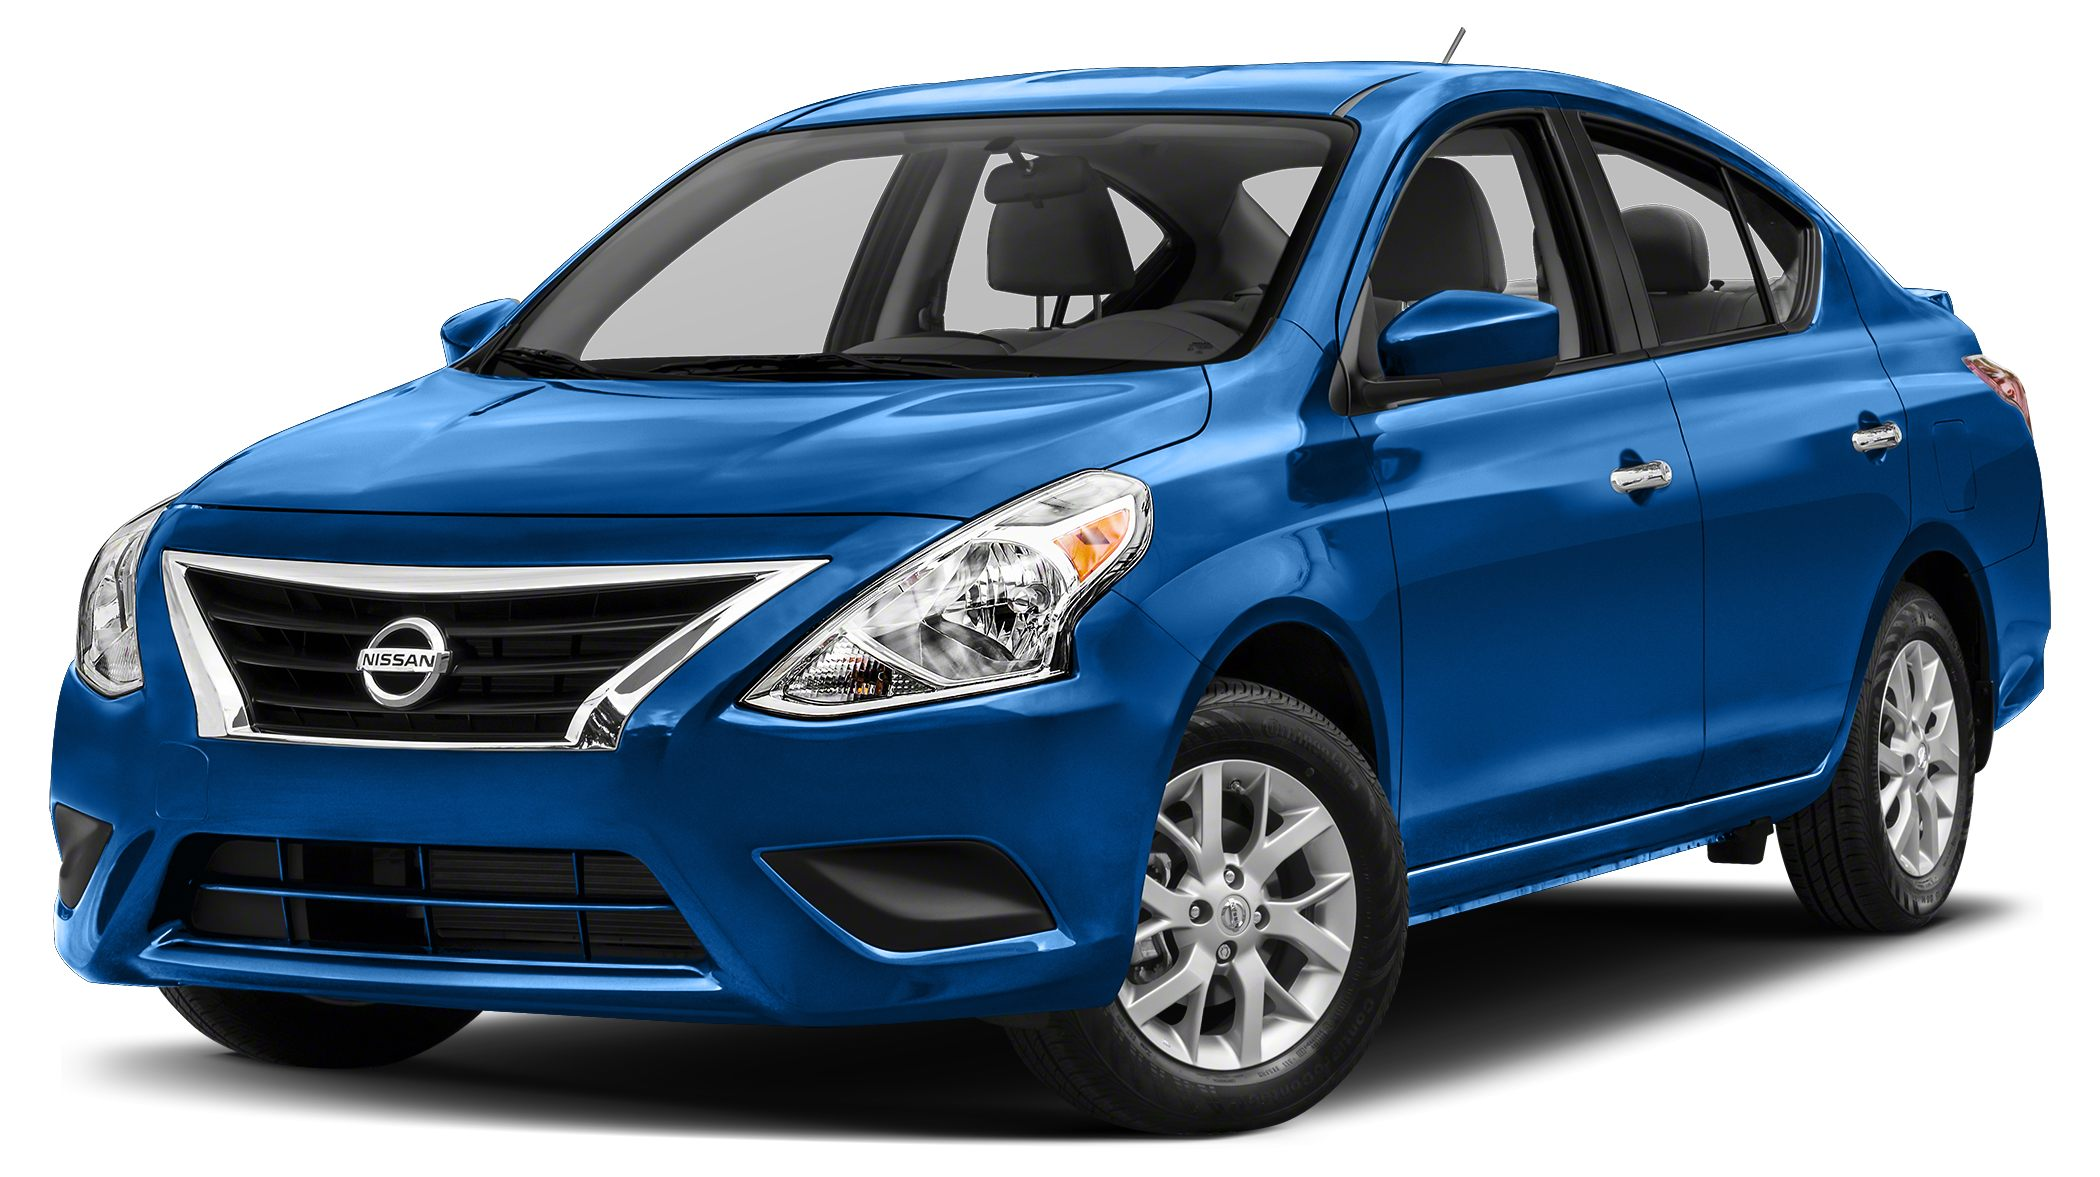 2015 Nissan Versa 16 SV Miles 66868Color Metallic Blue Stock 7170395A VIN 3N1CN7AP6FL876038